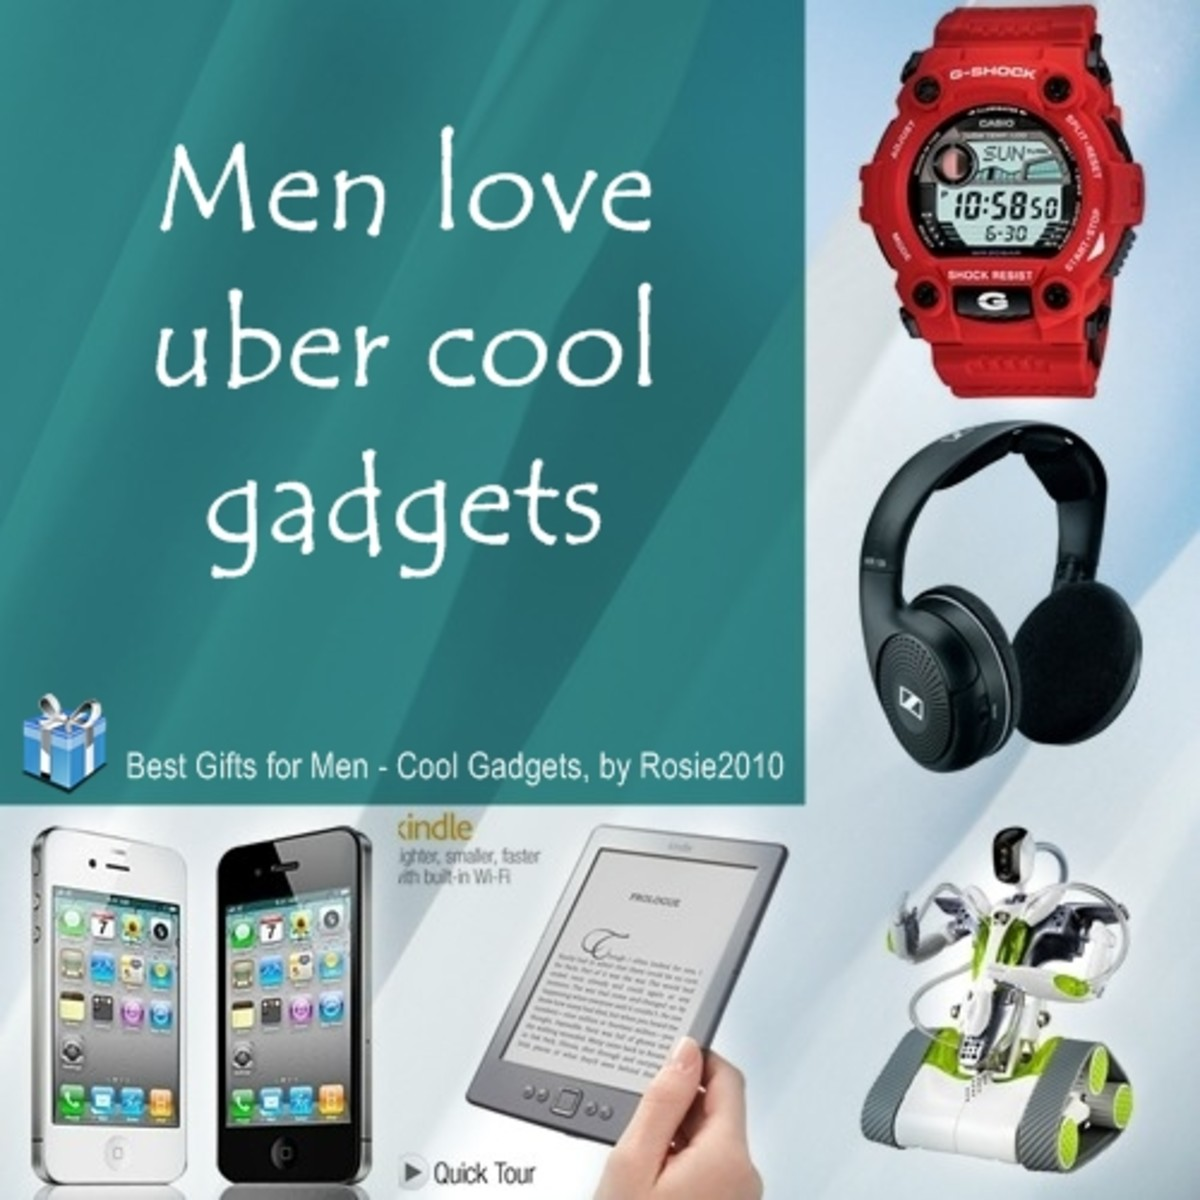 Best Gifts for Men: Cool Gadgets Gift Ideas